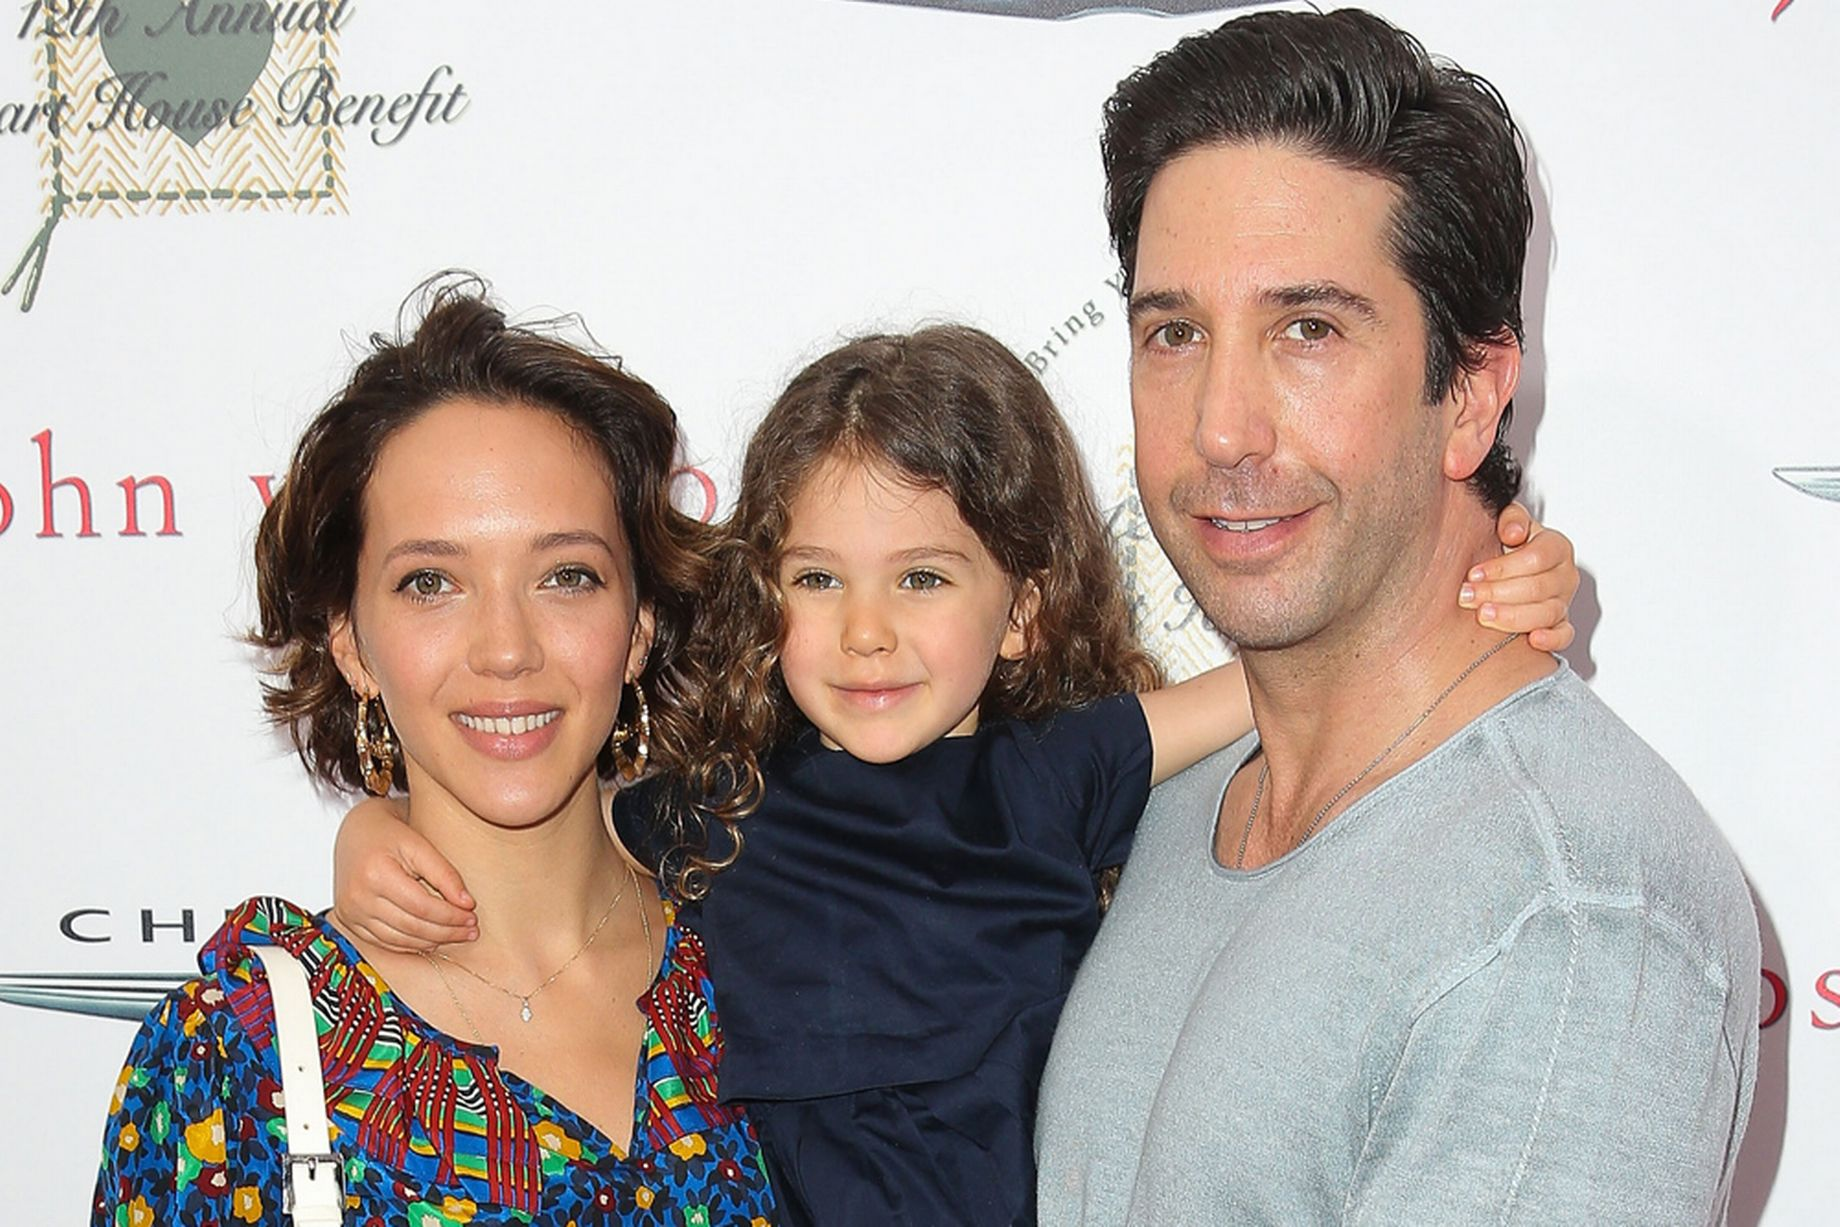 David Schwimmer attends John Varvatos 12th Annual Stuart House Benefit with his wife, Zoe Buckham, and their daughter, Cleo.